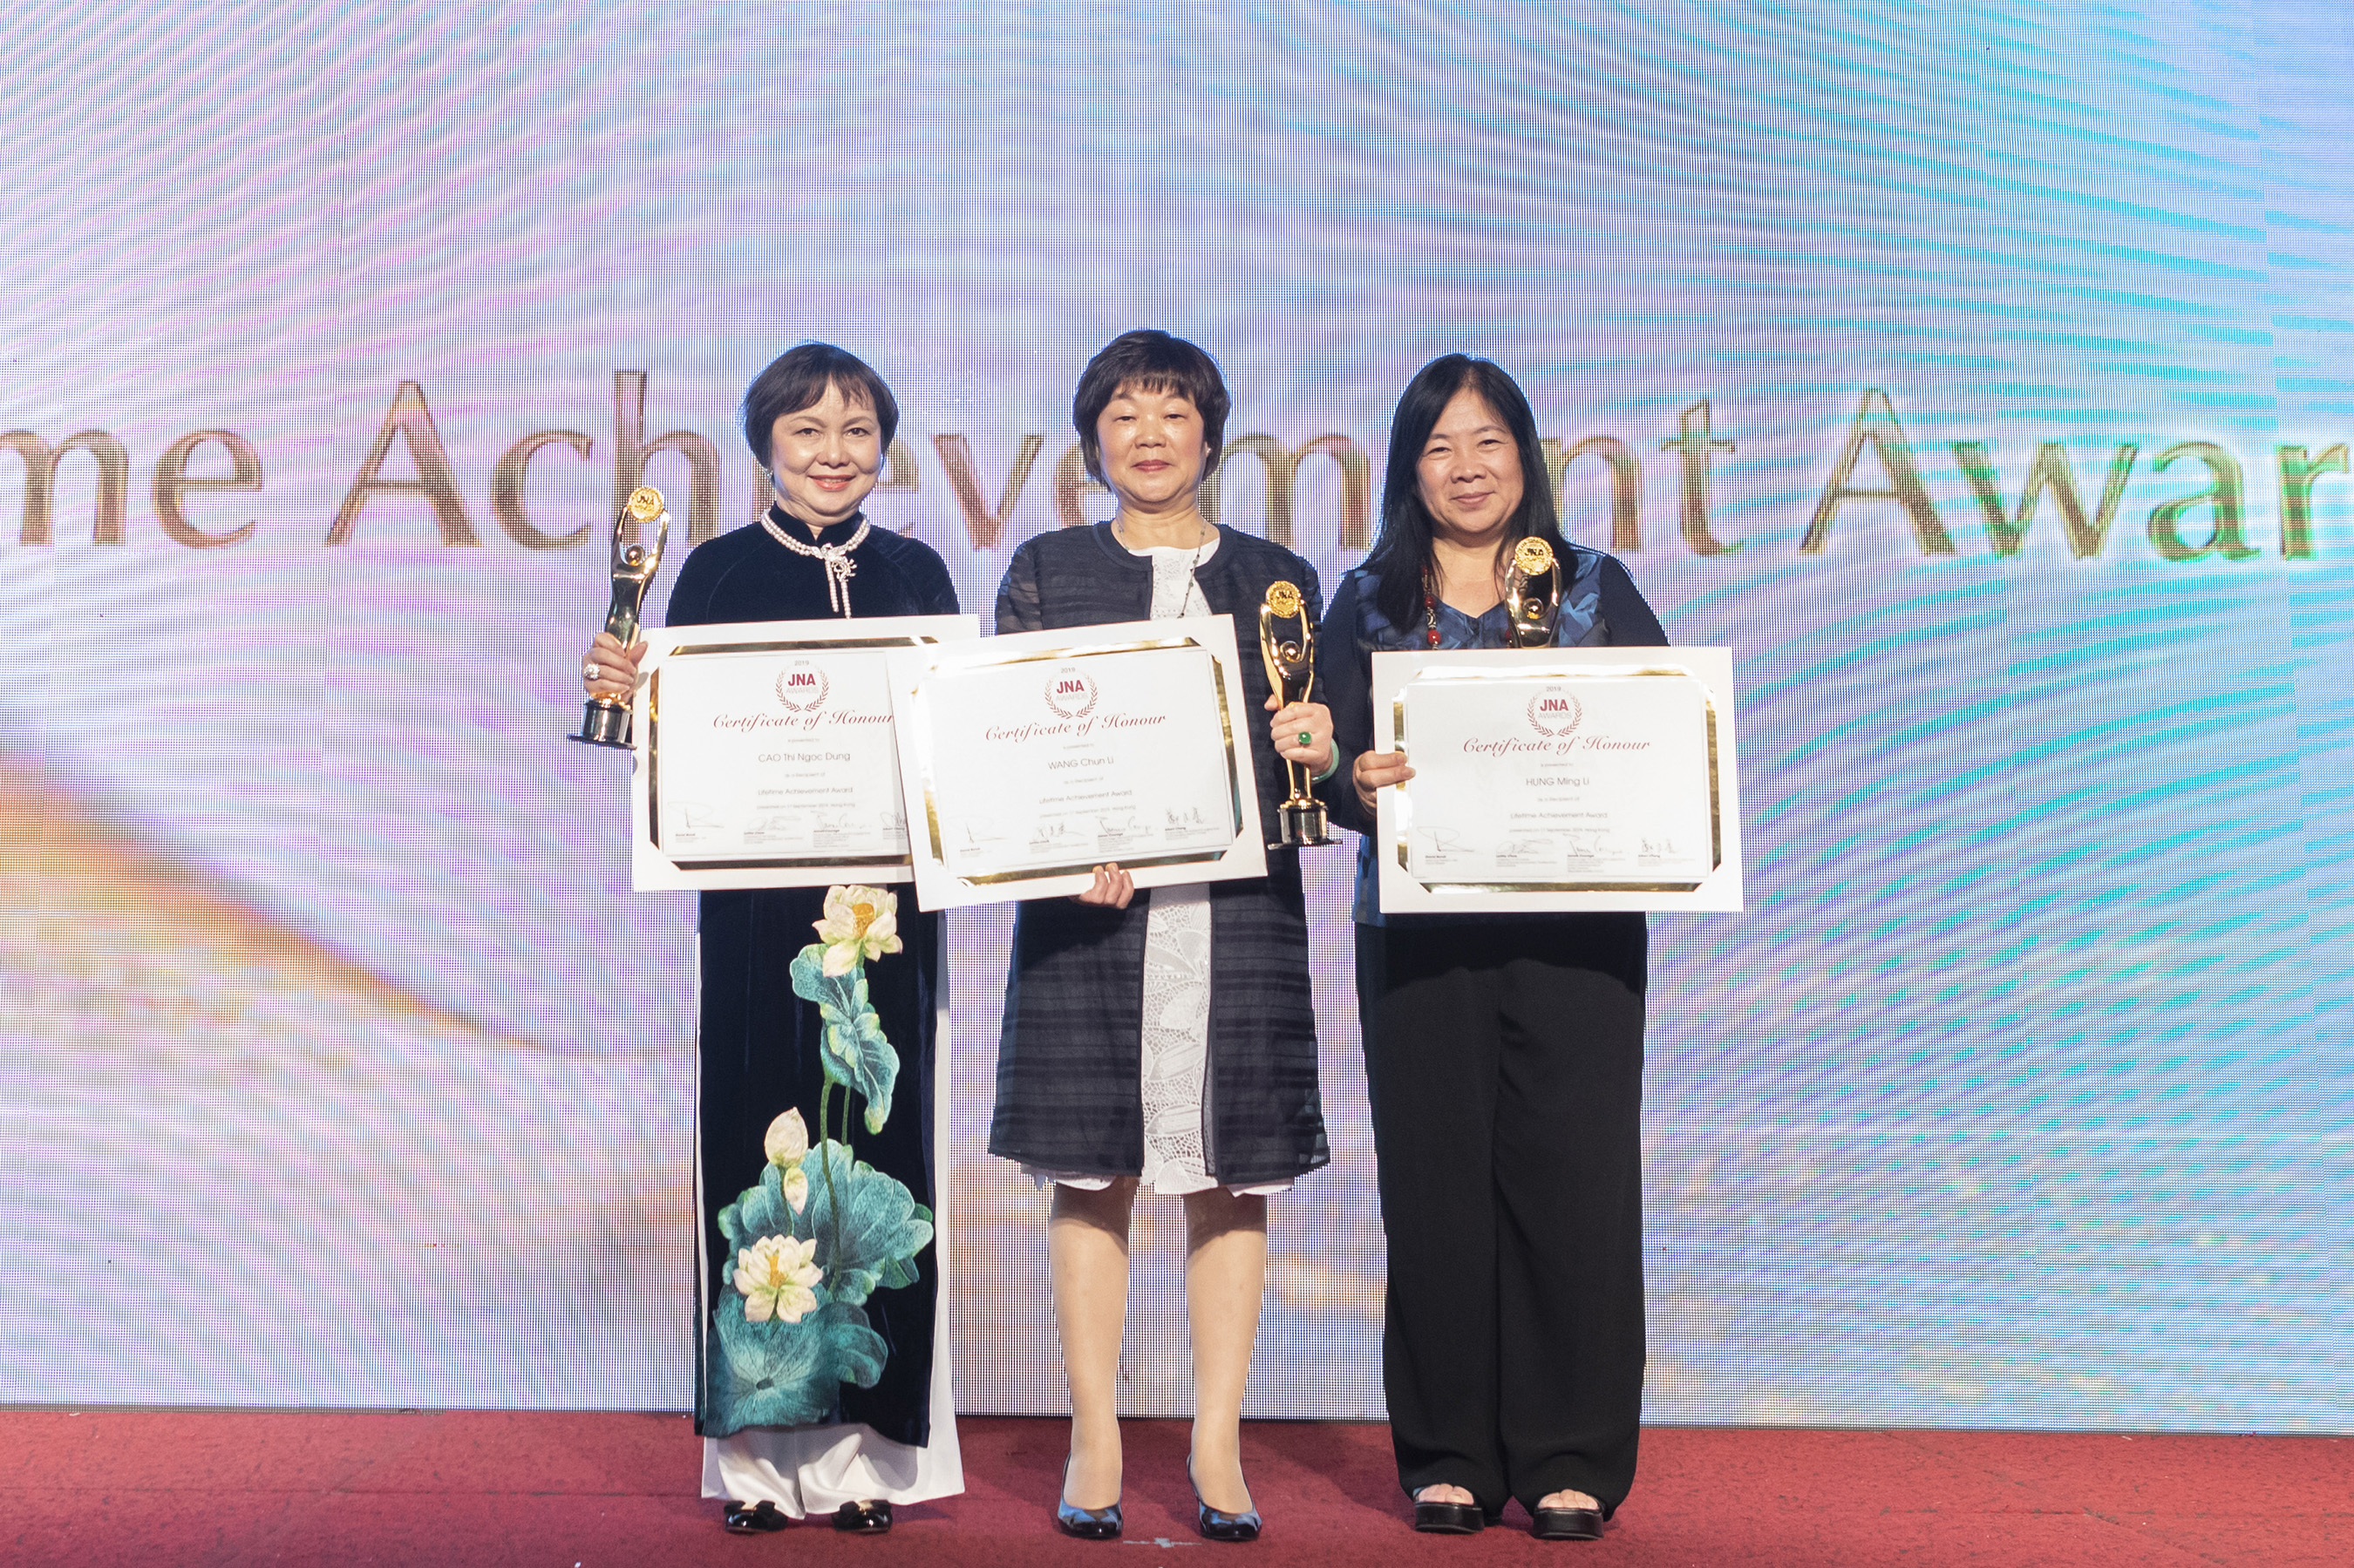 Three outstanding retail pioneers were feted for their lifetime achievements at the JNA Awards 2019. From left: Cao Thi Ngoc Dung, Founder and Chairperson of Phu Nhuan Jewelry Joint Stock Company; Wang Chun Li, Managing Director and General Manager of Beijing Caishikou Department Store; and Hung Ming Li, Founder and Chairman of Chii Lih Coral.